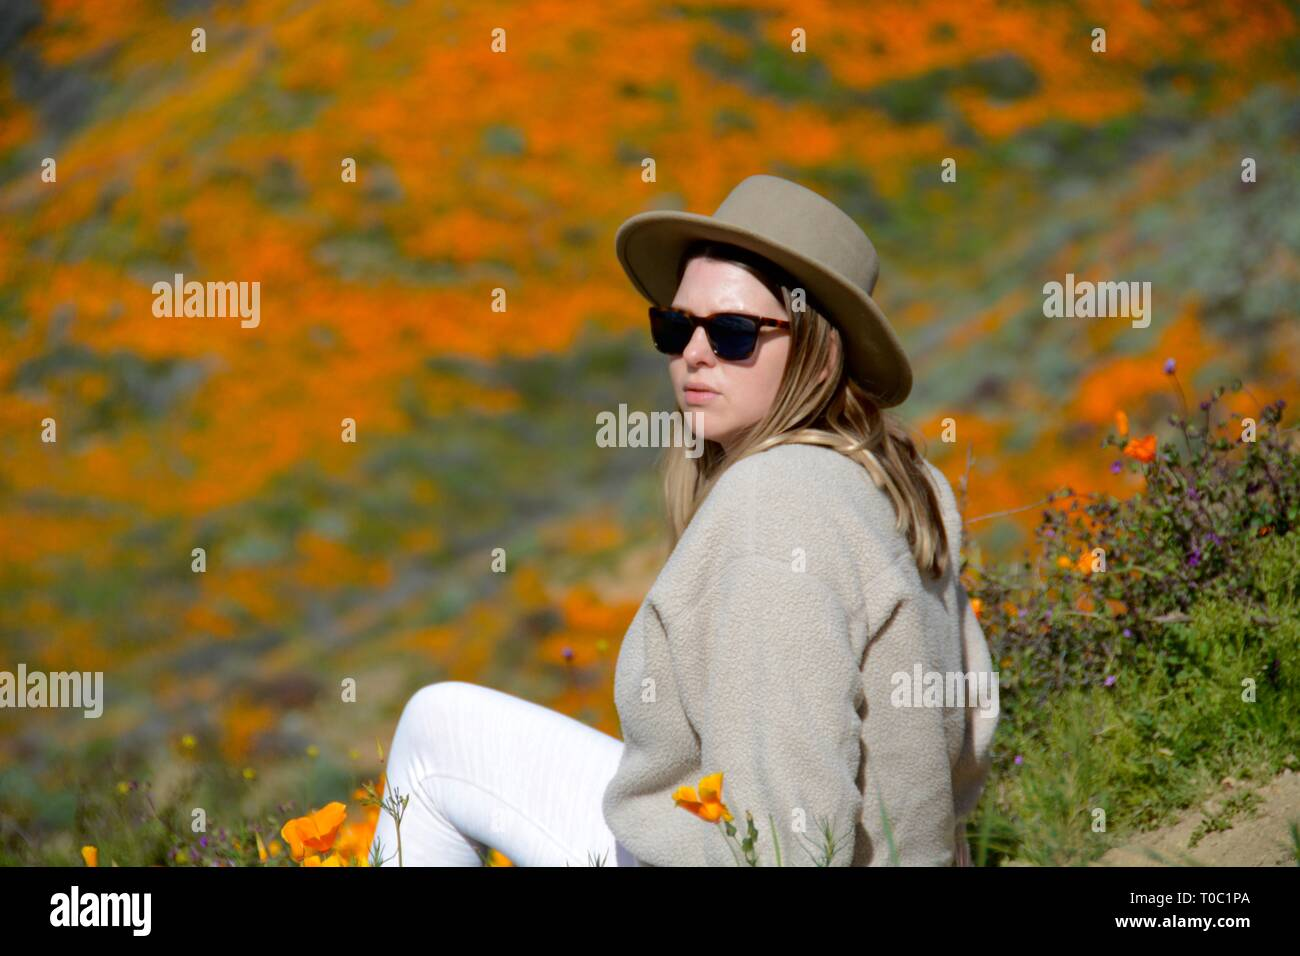 Super Bloom 2019. Woman disobeys the rules and sits on the golden poppies—crushing them—in her quest for photos at the now-closed Walker Canyon. - Stock Image